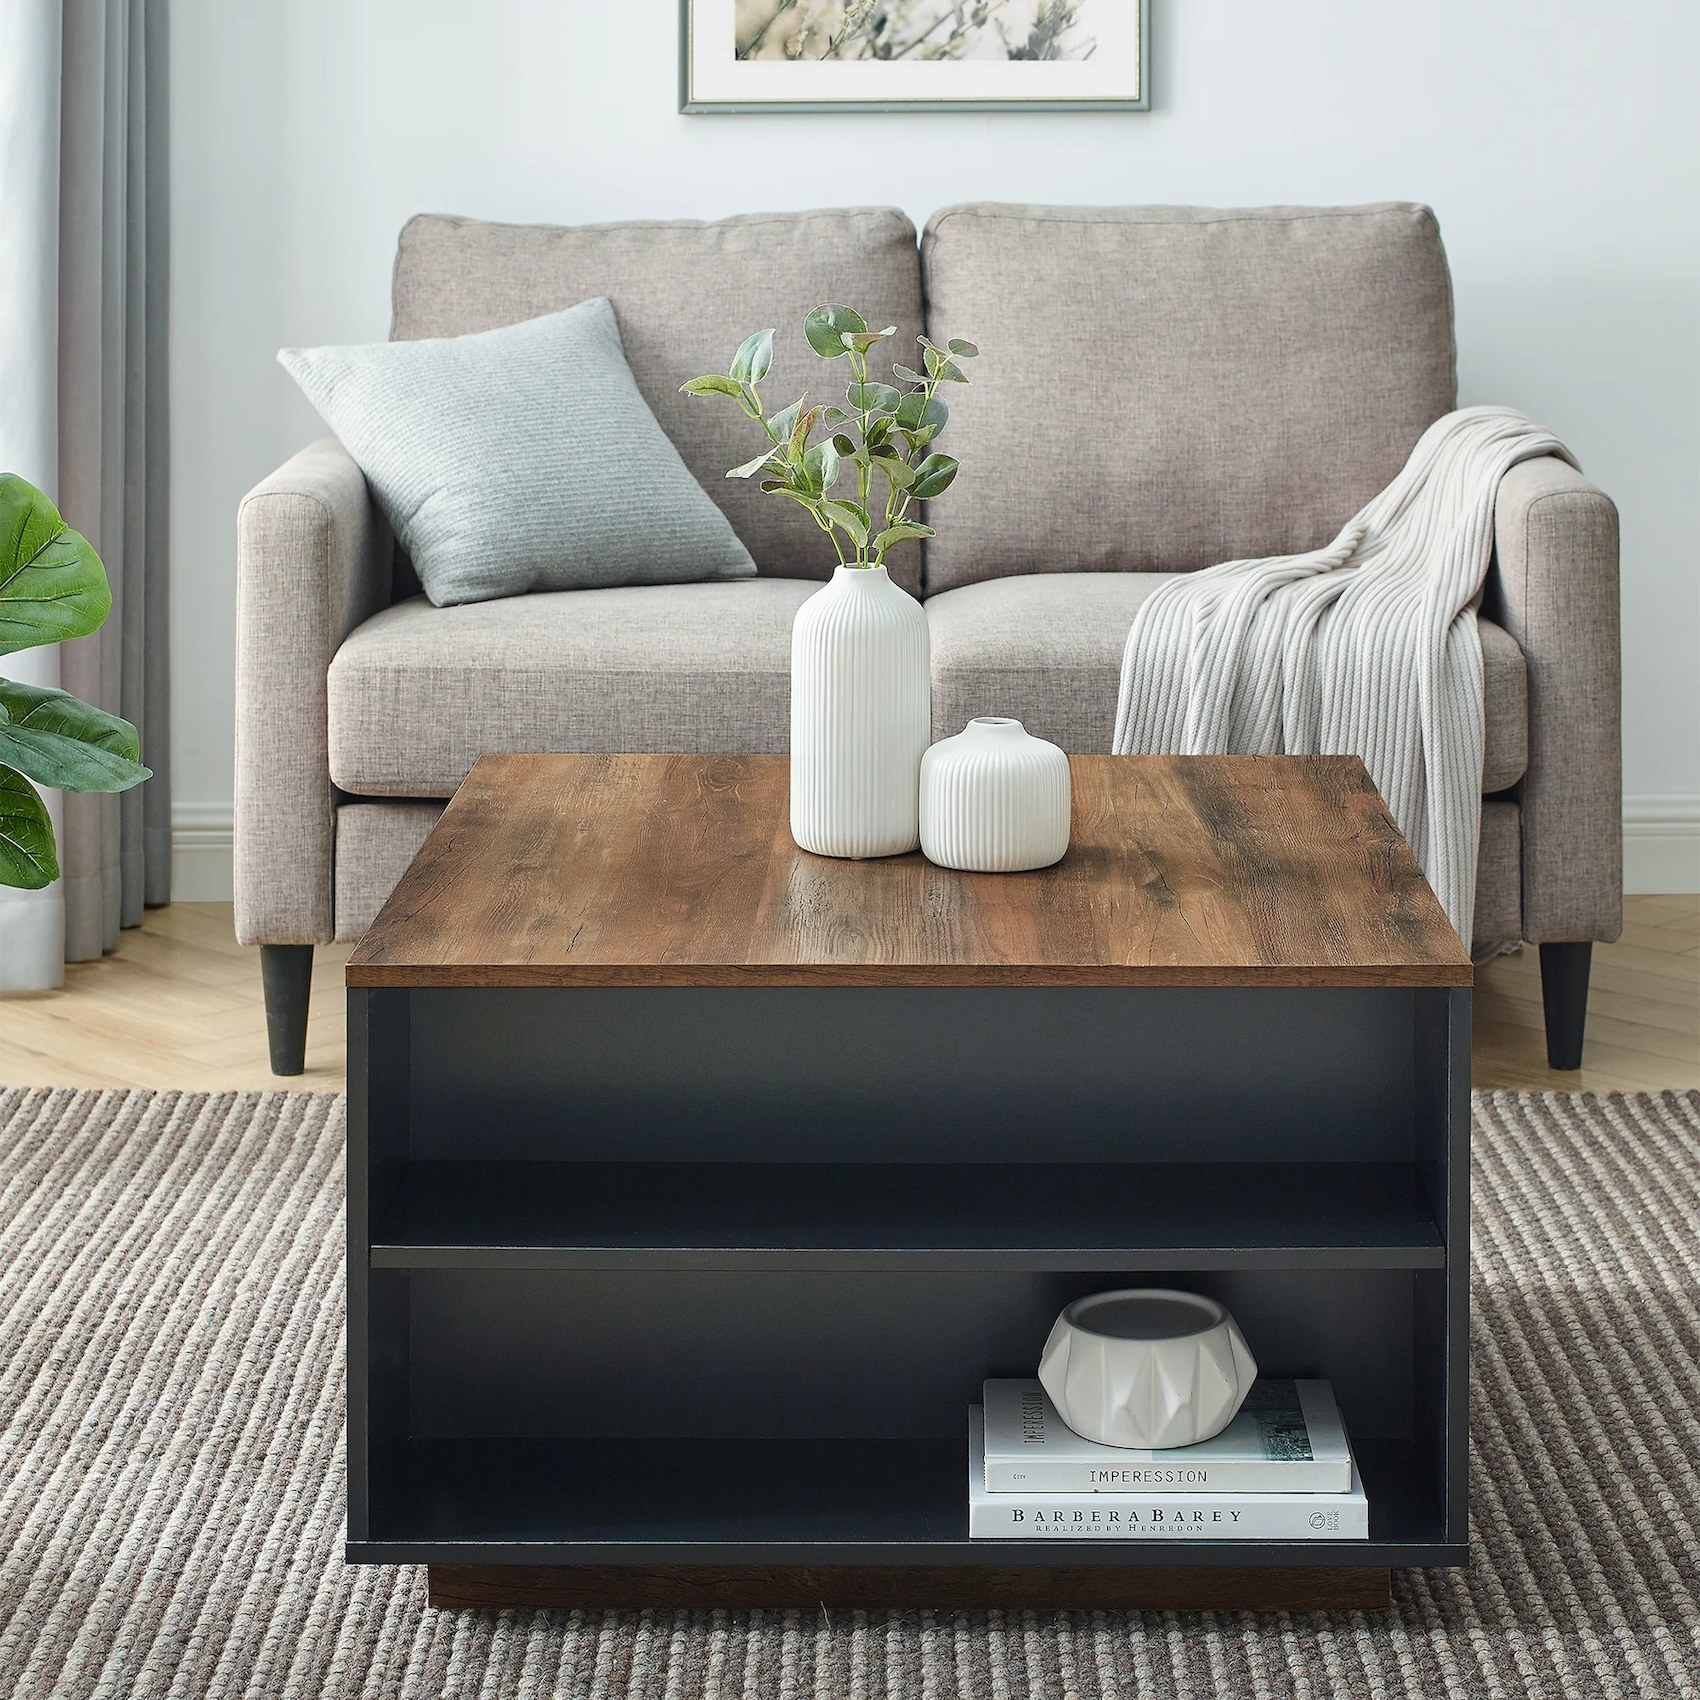 The coffee table with a black base and brown top, as well as two visible open shelves, in a living room